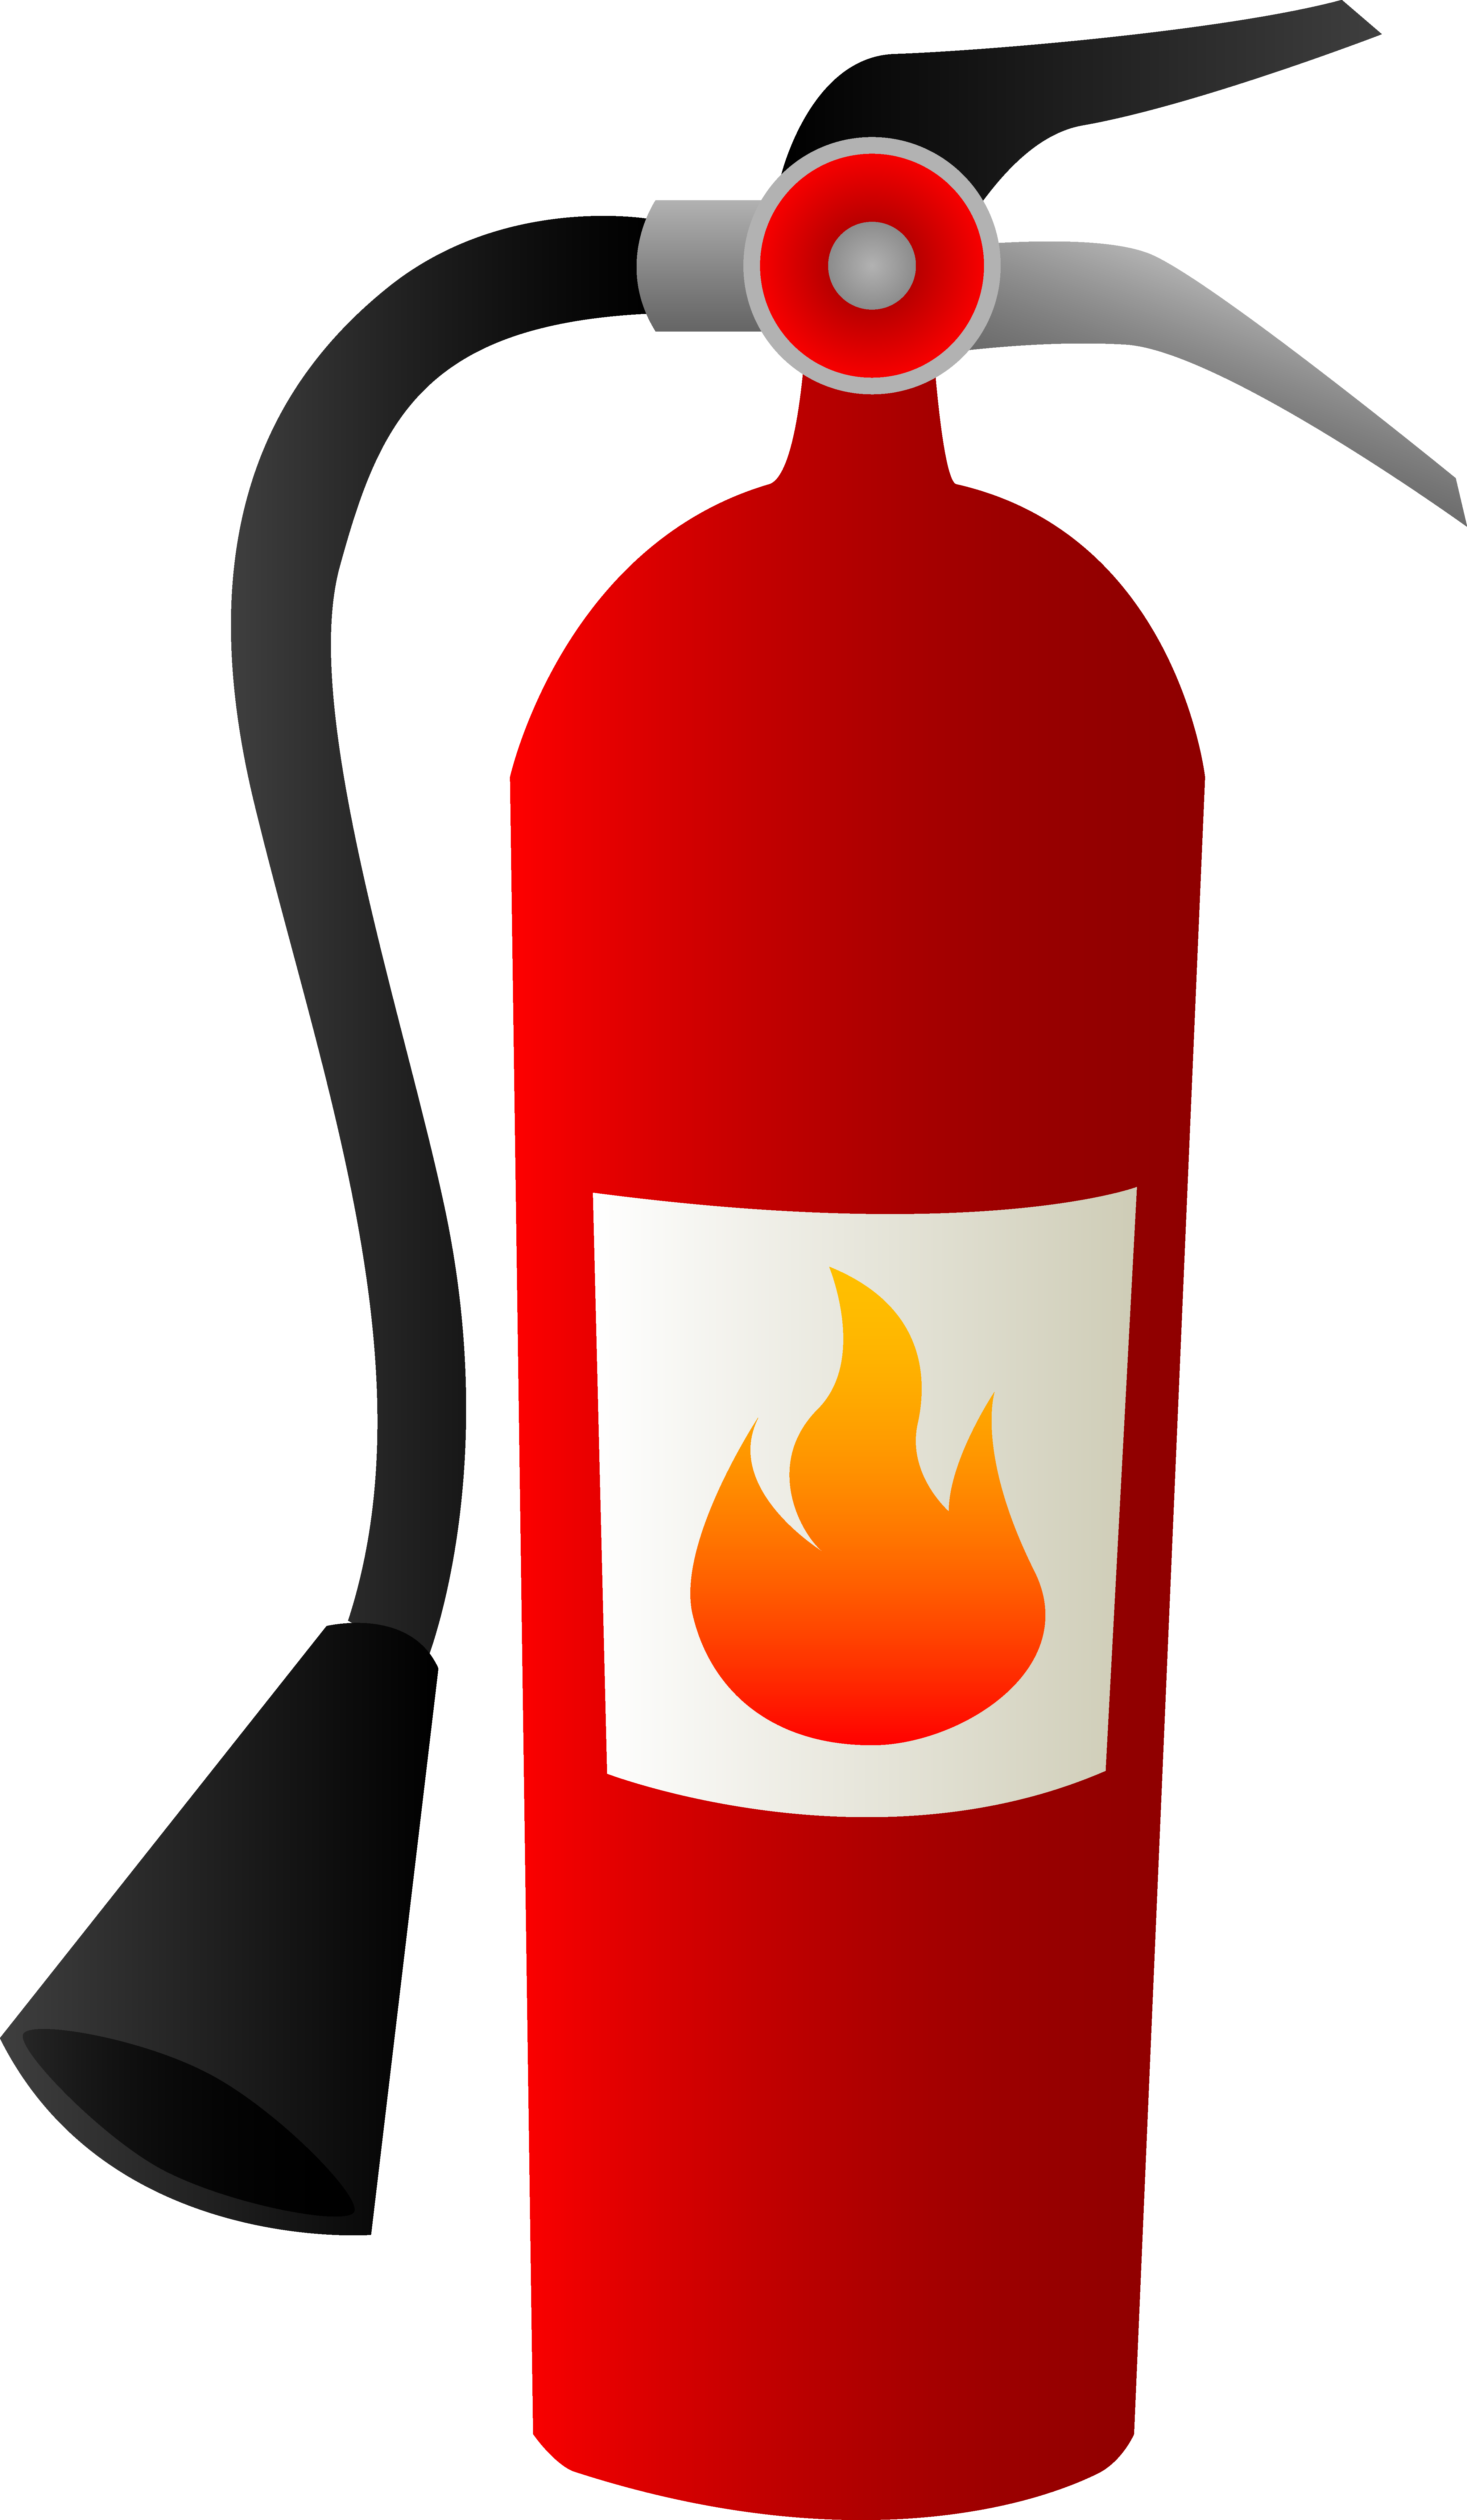 Cute Fire Extinguisher Clipart - Free Clipart Images